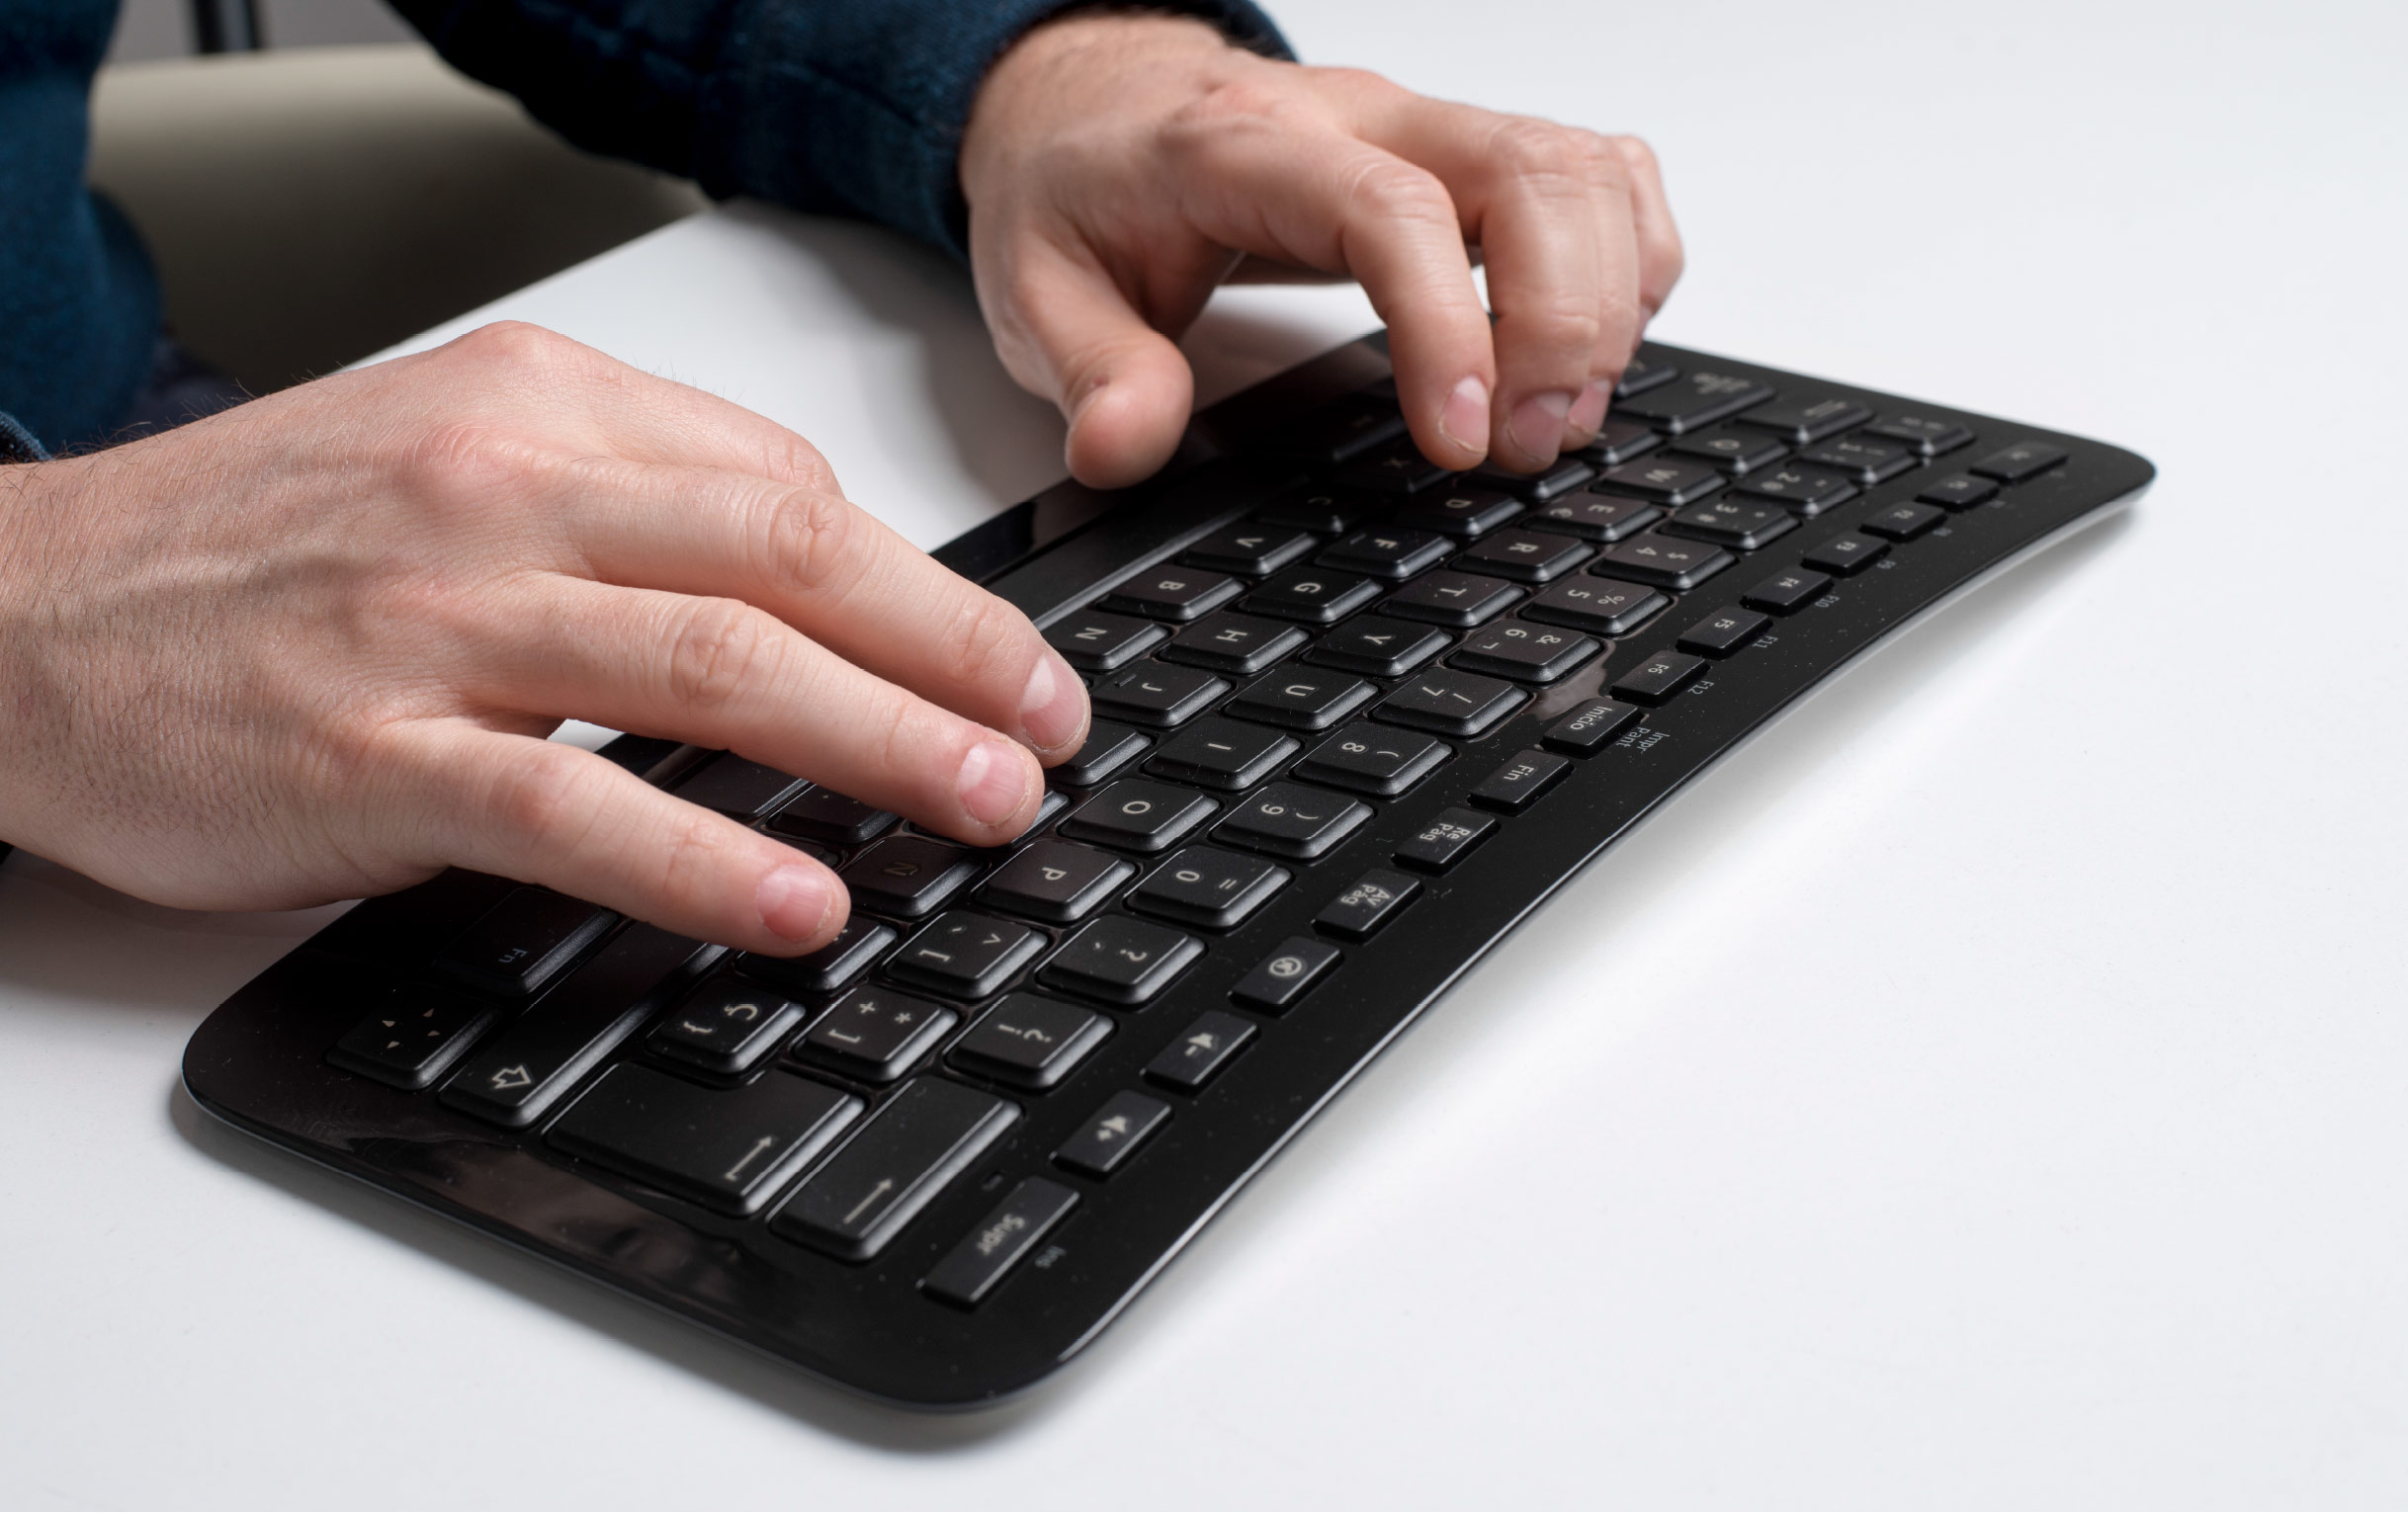 hands_using_keyboard